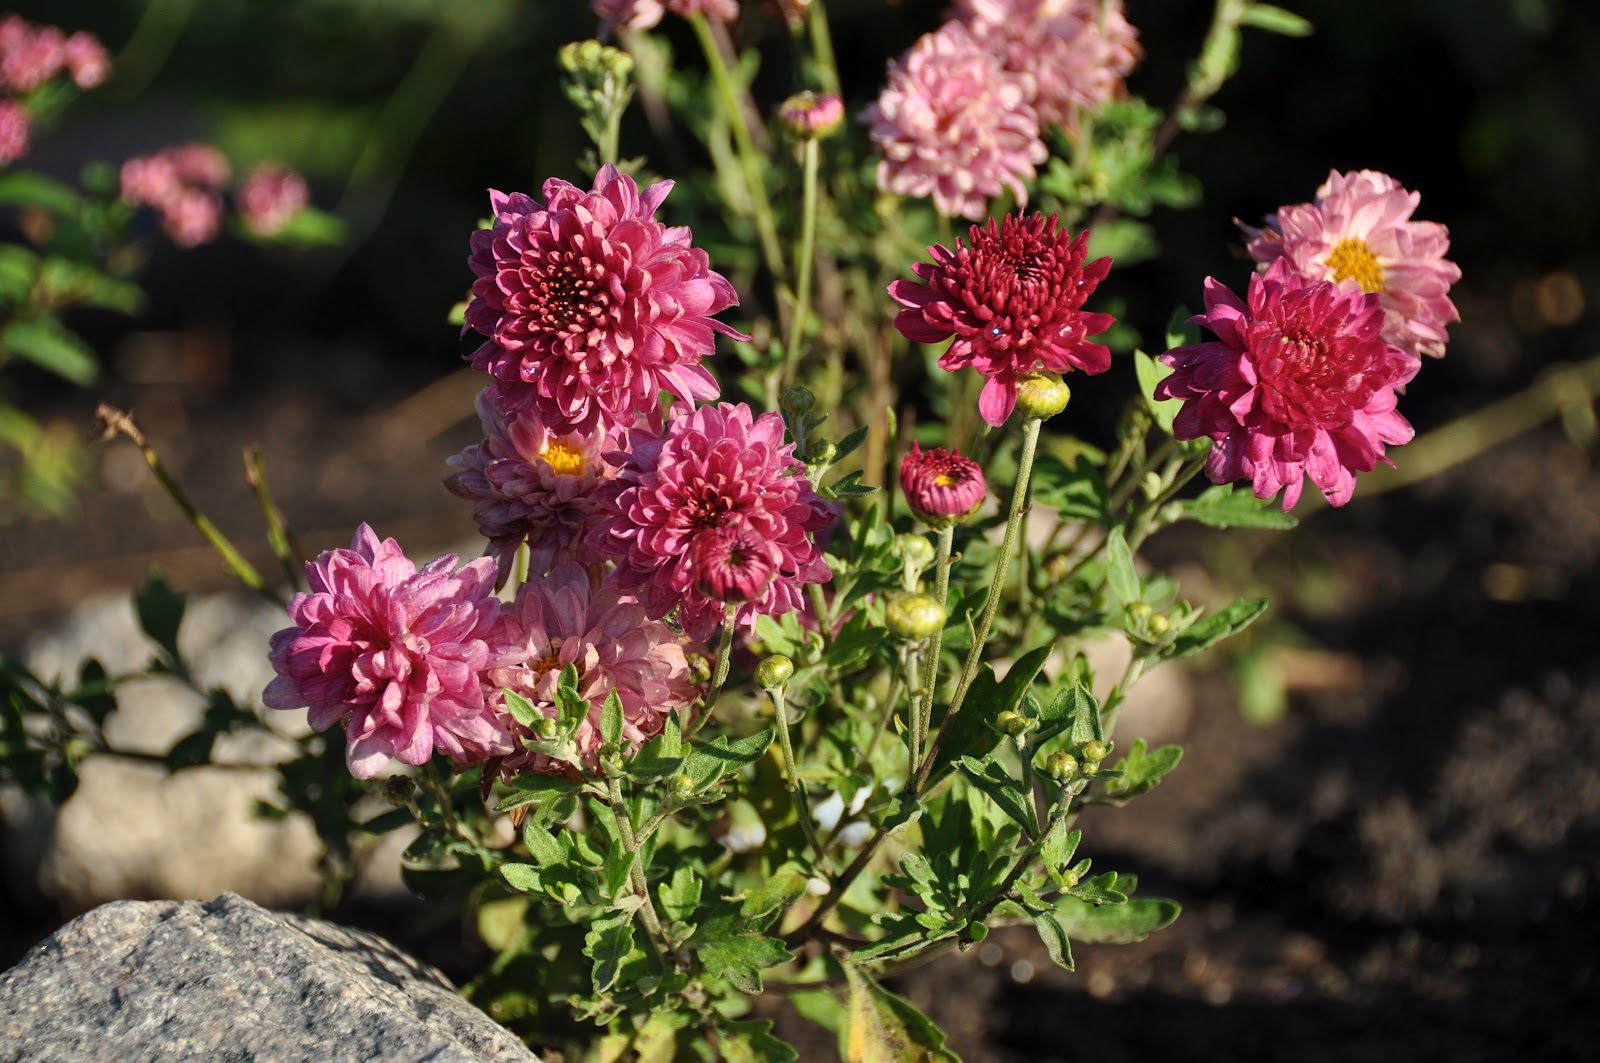 Northern exposure gardening plant list hardy perennials for the northern exposure gardening plant list hardy perennials for the north mightylinksfo